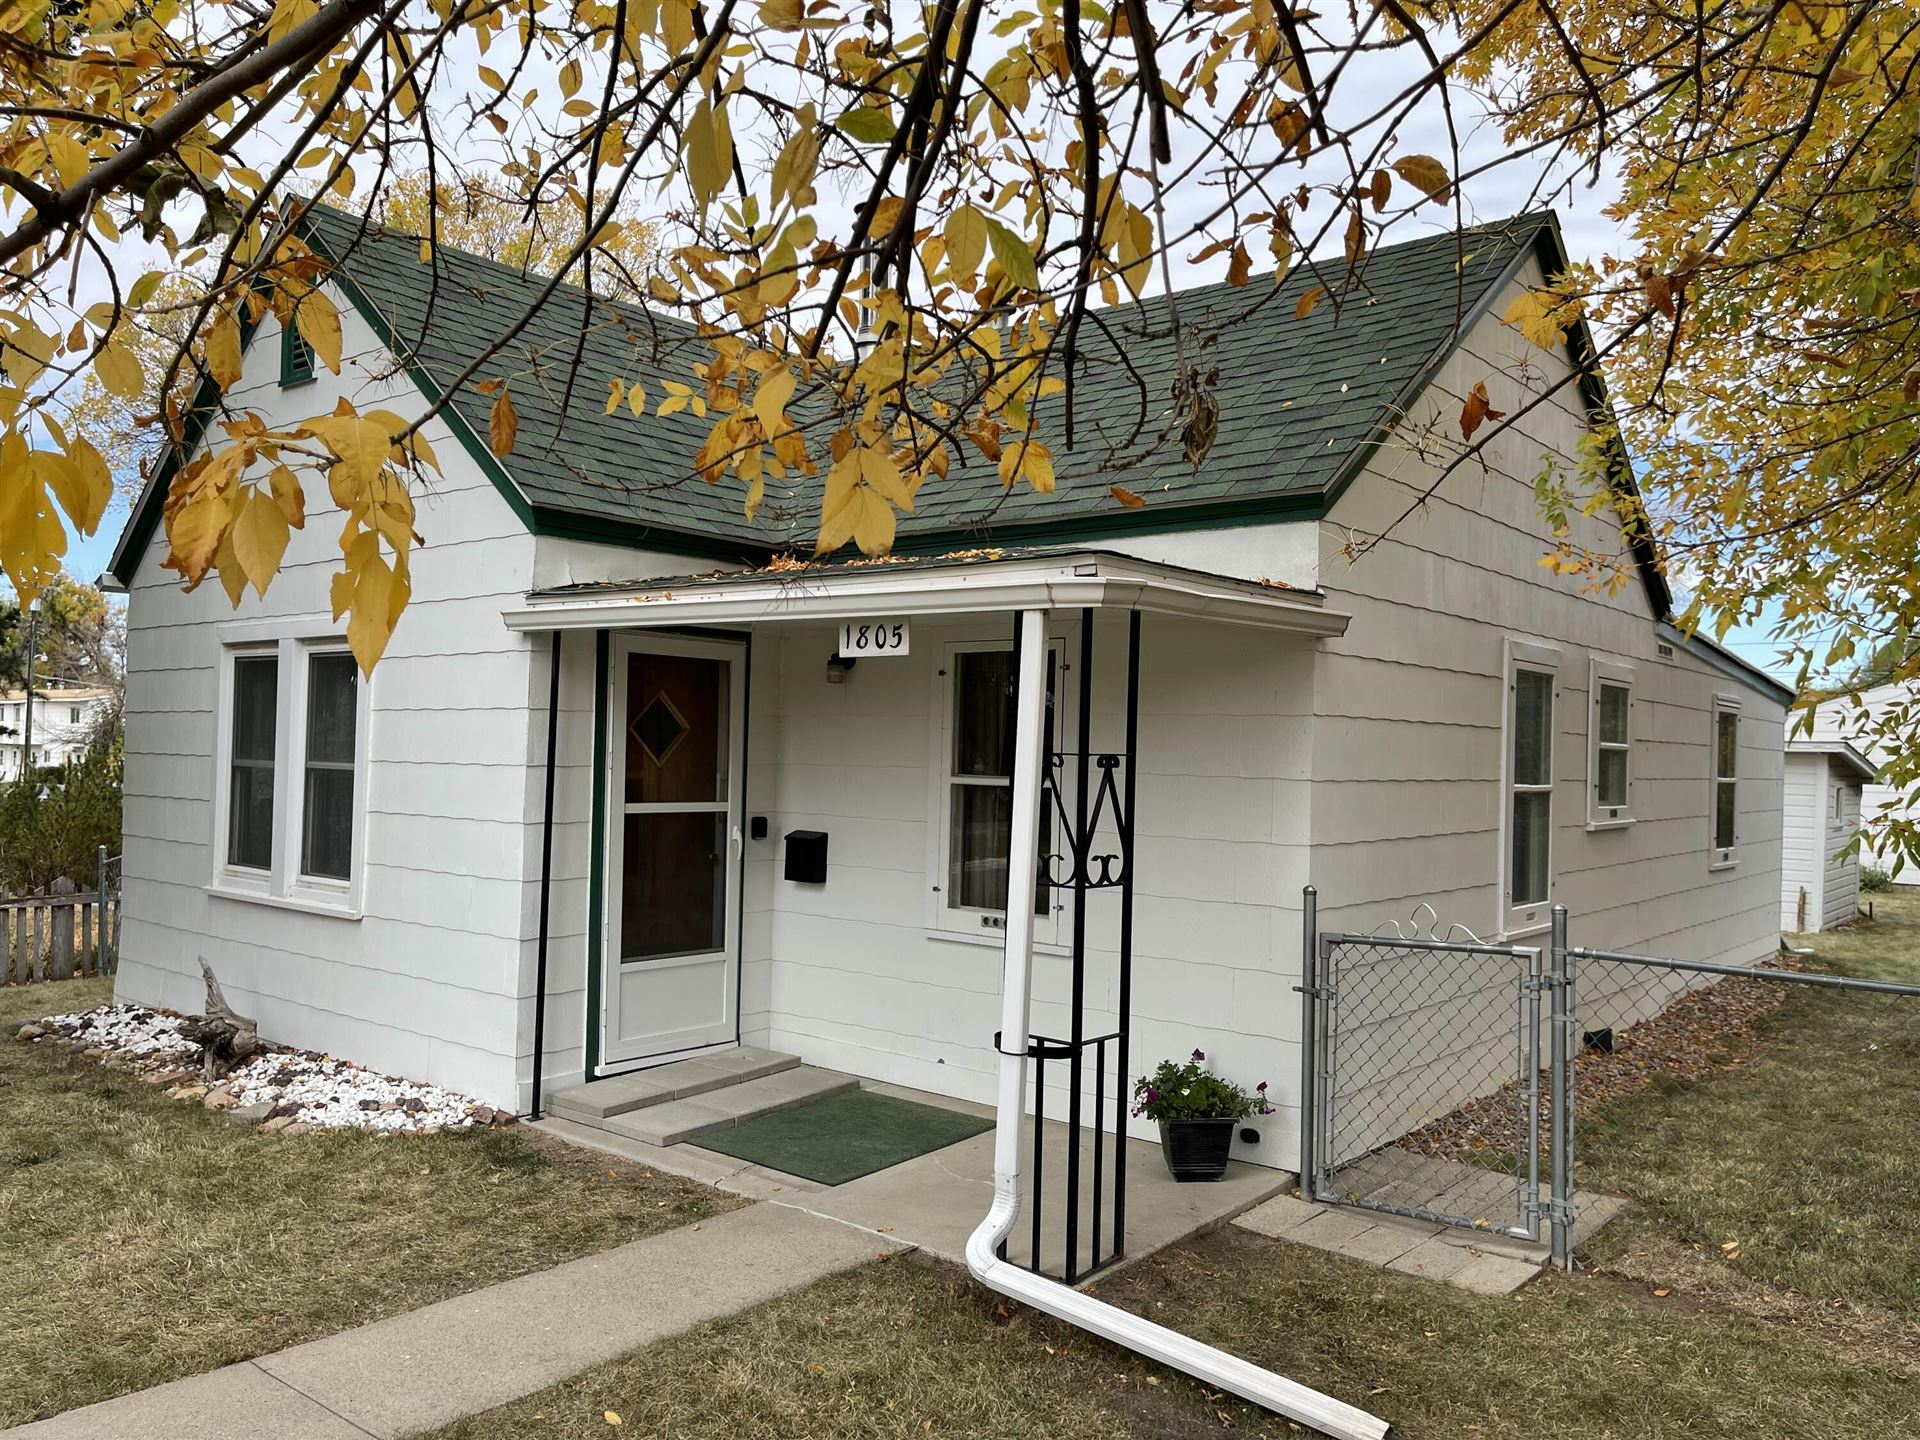 Photo for 1805 7th Avenue South, Great Falls, MT 59405 (MLS # 22116071)